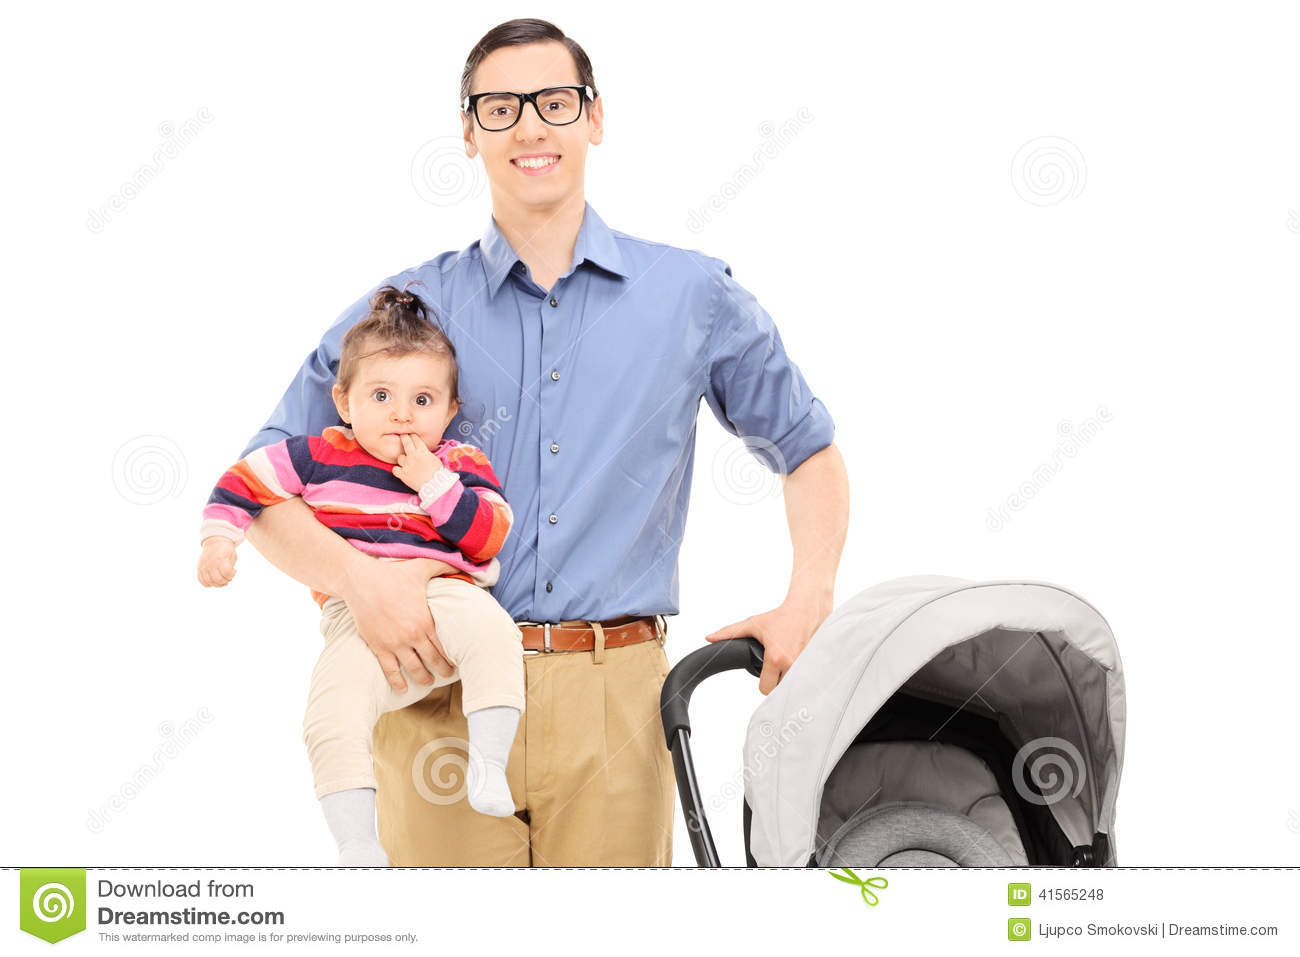 young father holding his baby daughter and baby stroller moving clipart for powerpoint moving clip art images